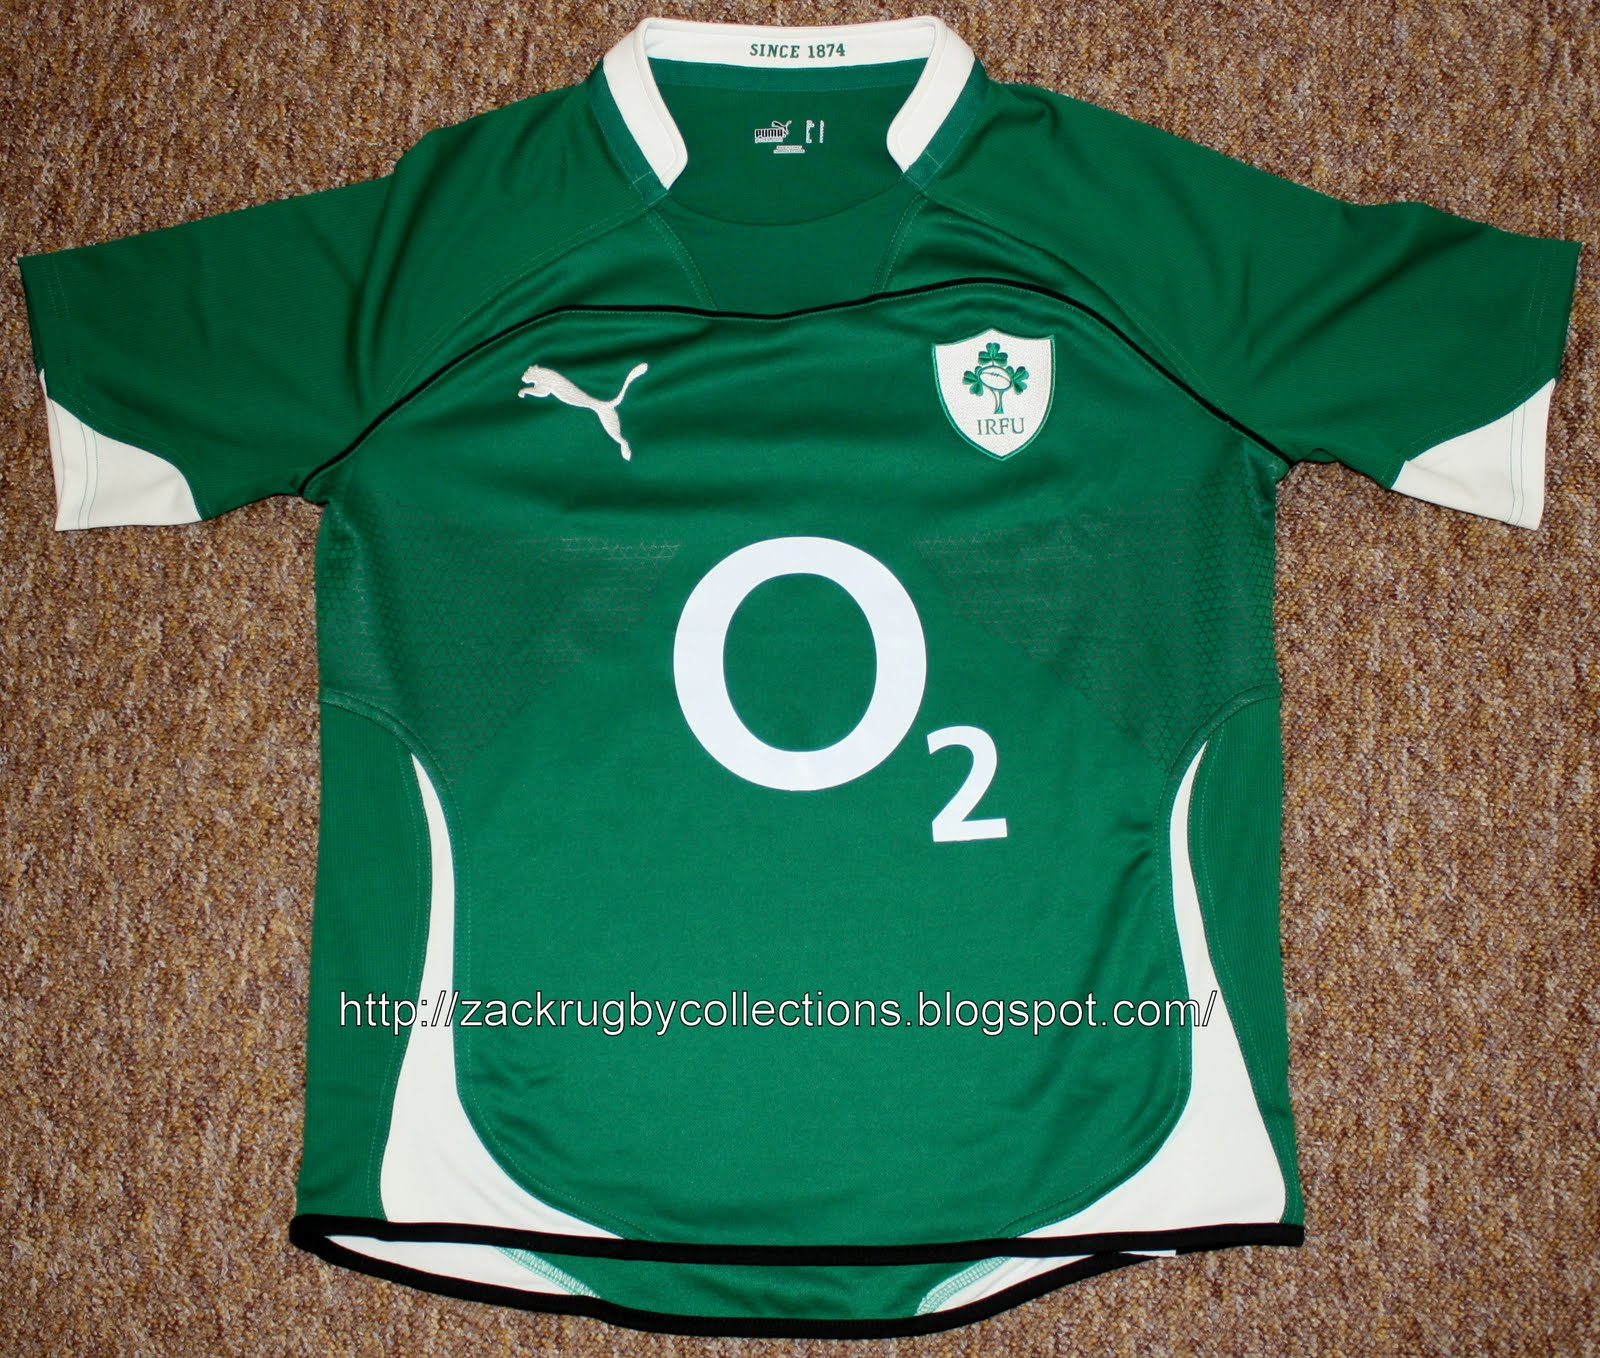 1d1015ba61a ZackRugby Collections®: Ireland (IRFU) SS Pro Home 2010/2011 Rugby ...